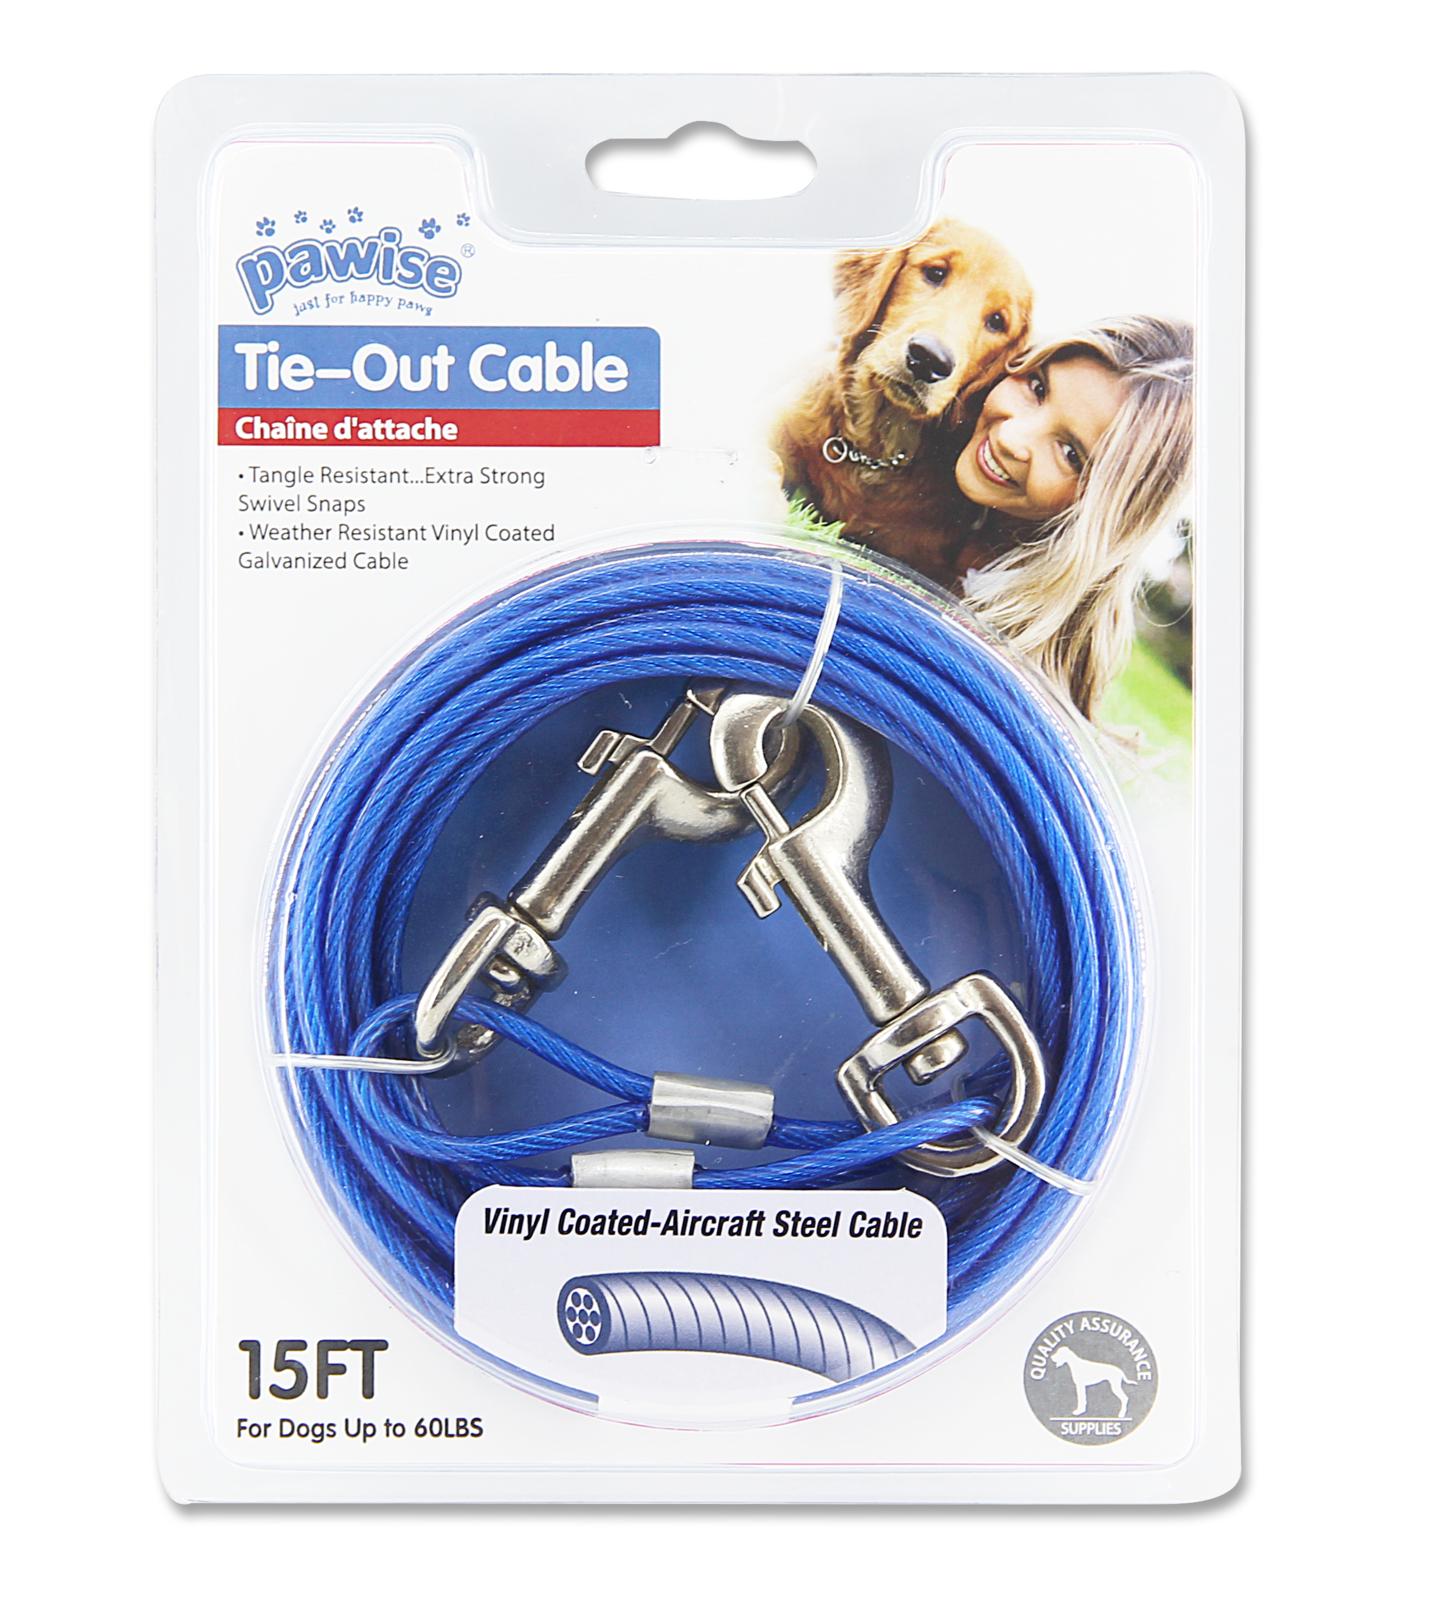 Pawise: Tie Out Cable image